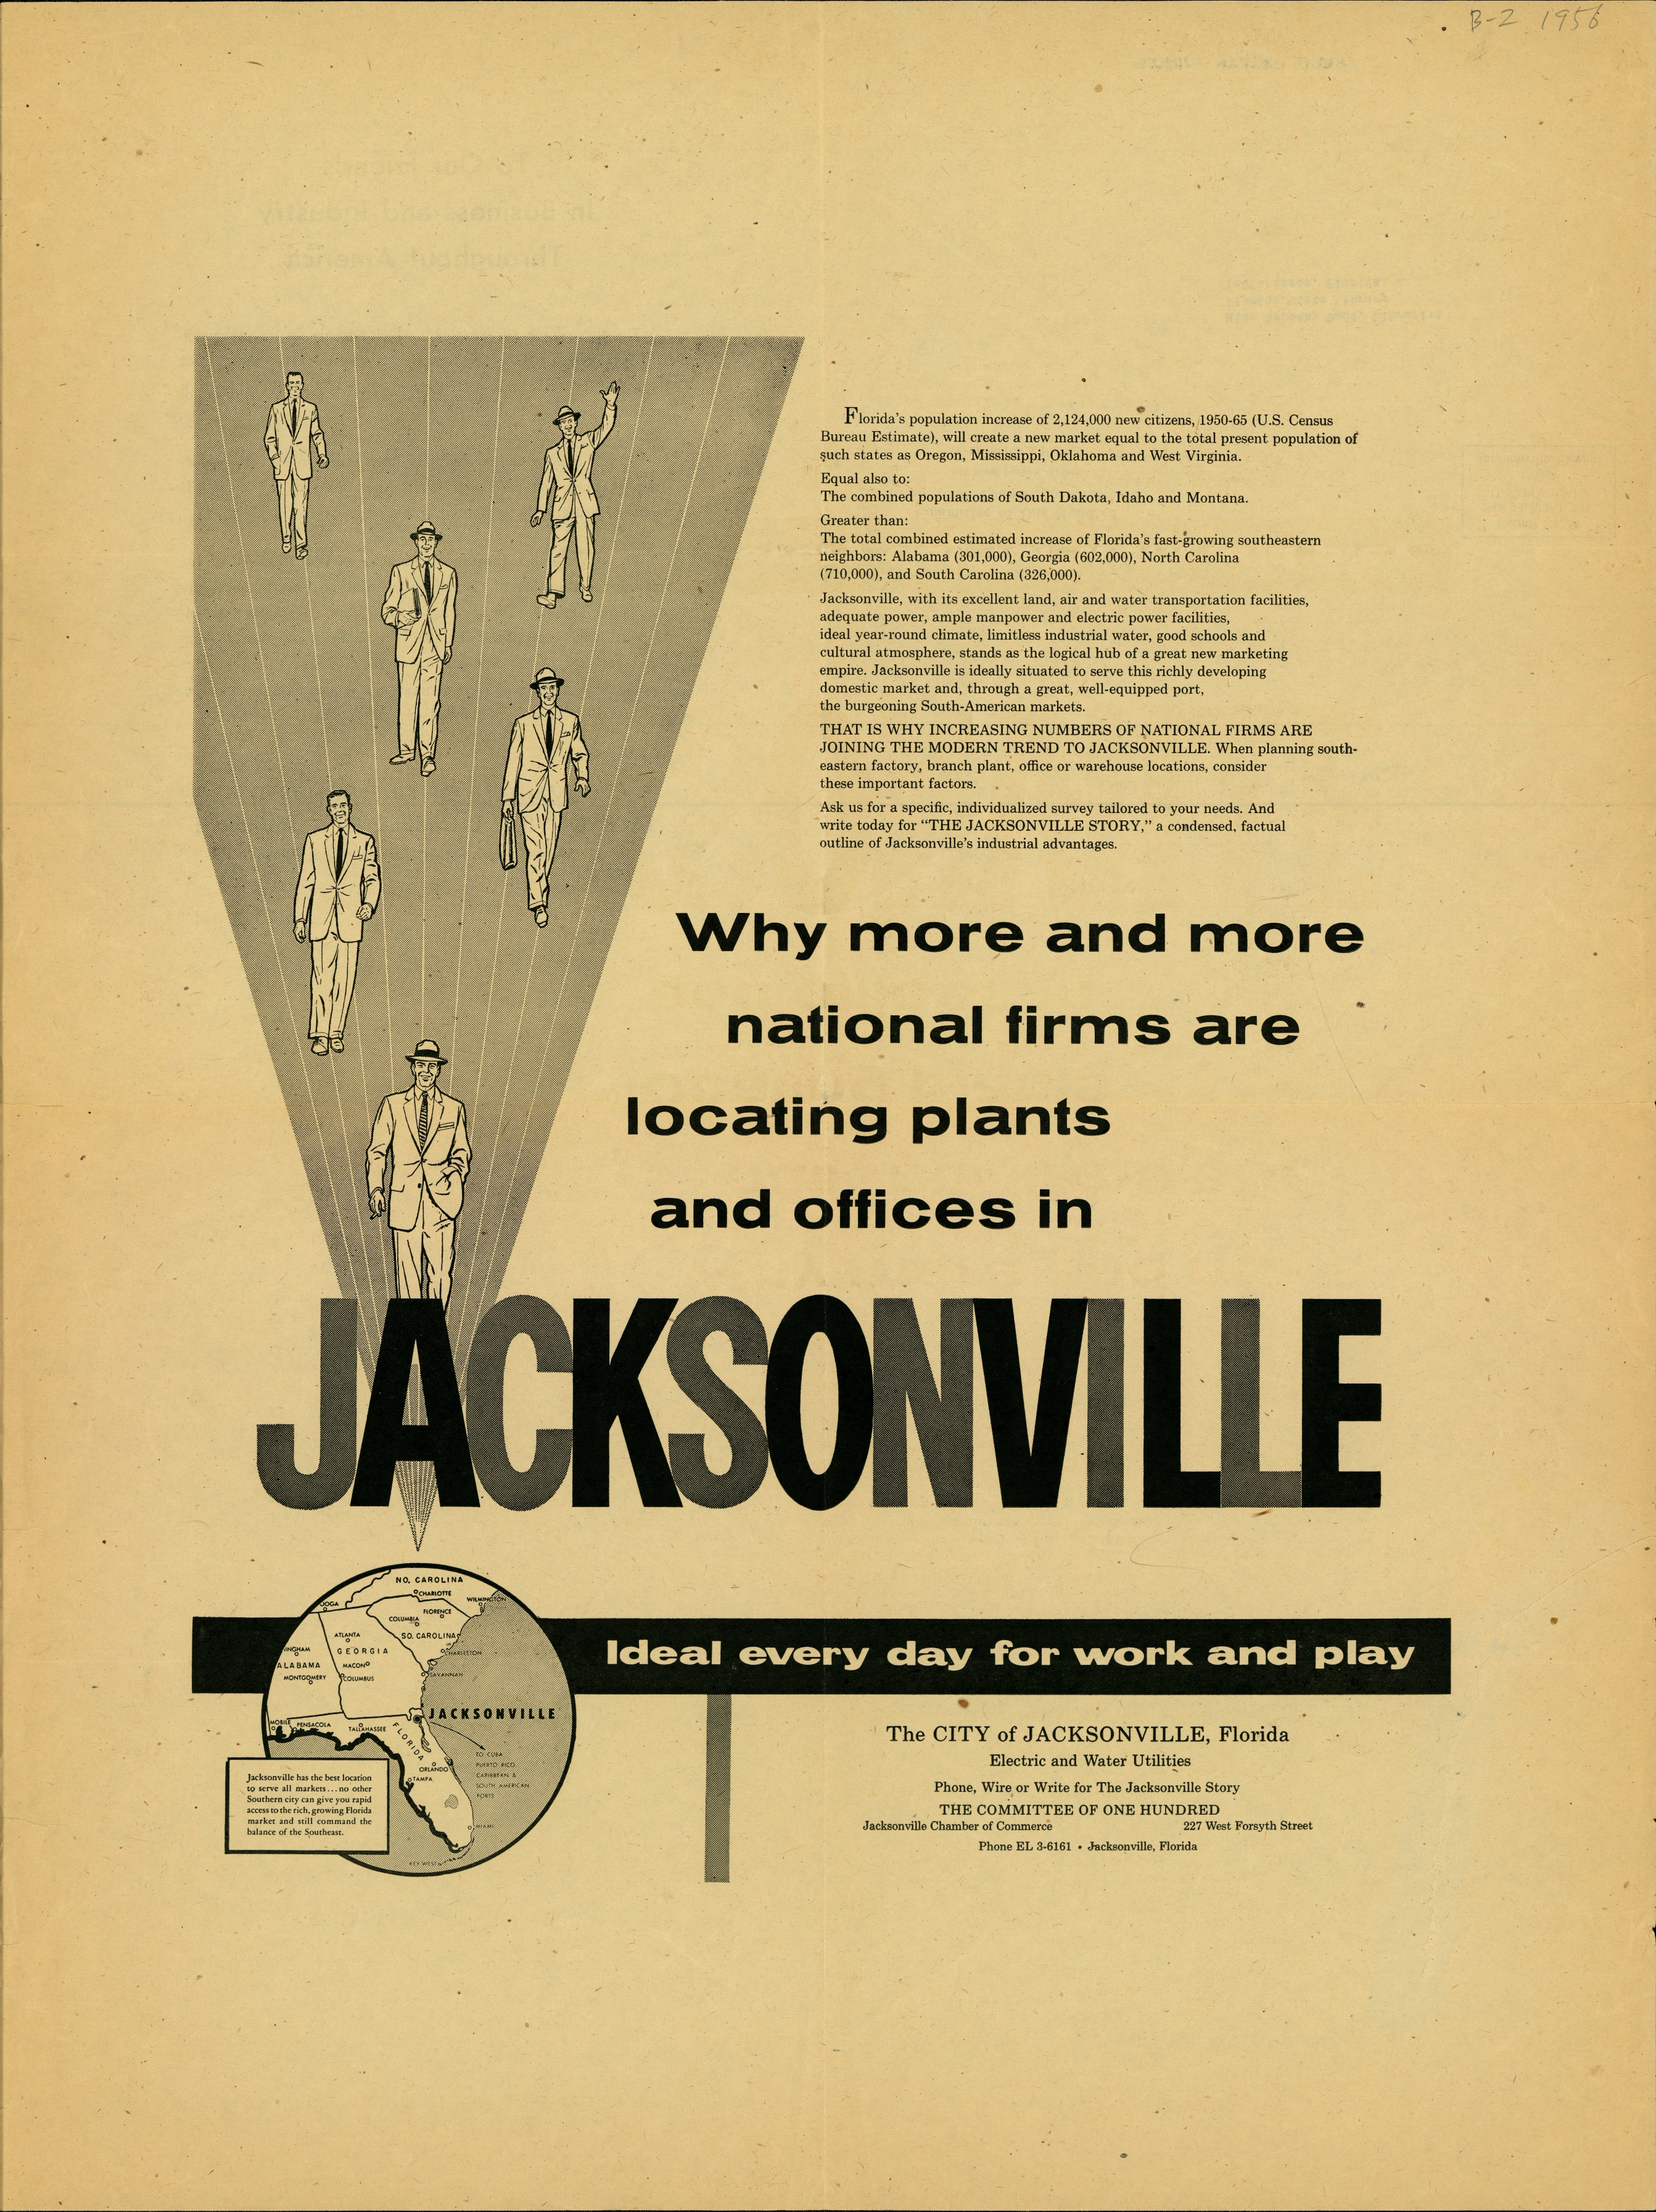 Why more and more national firms are locating plants and offices in Jacksonville